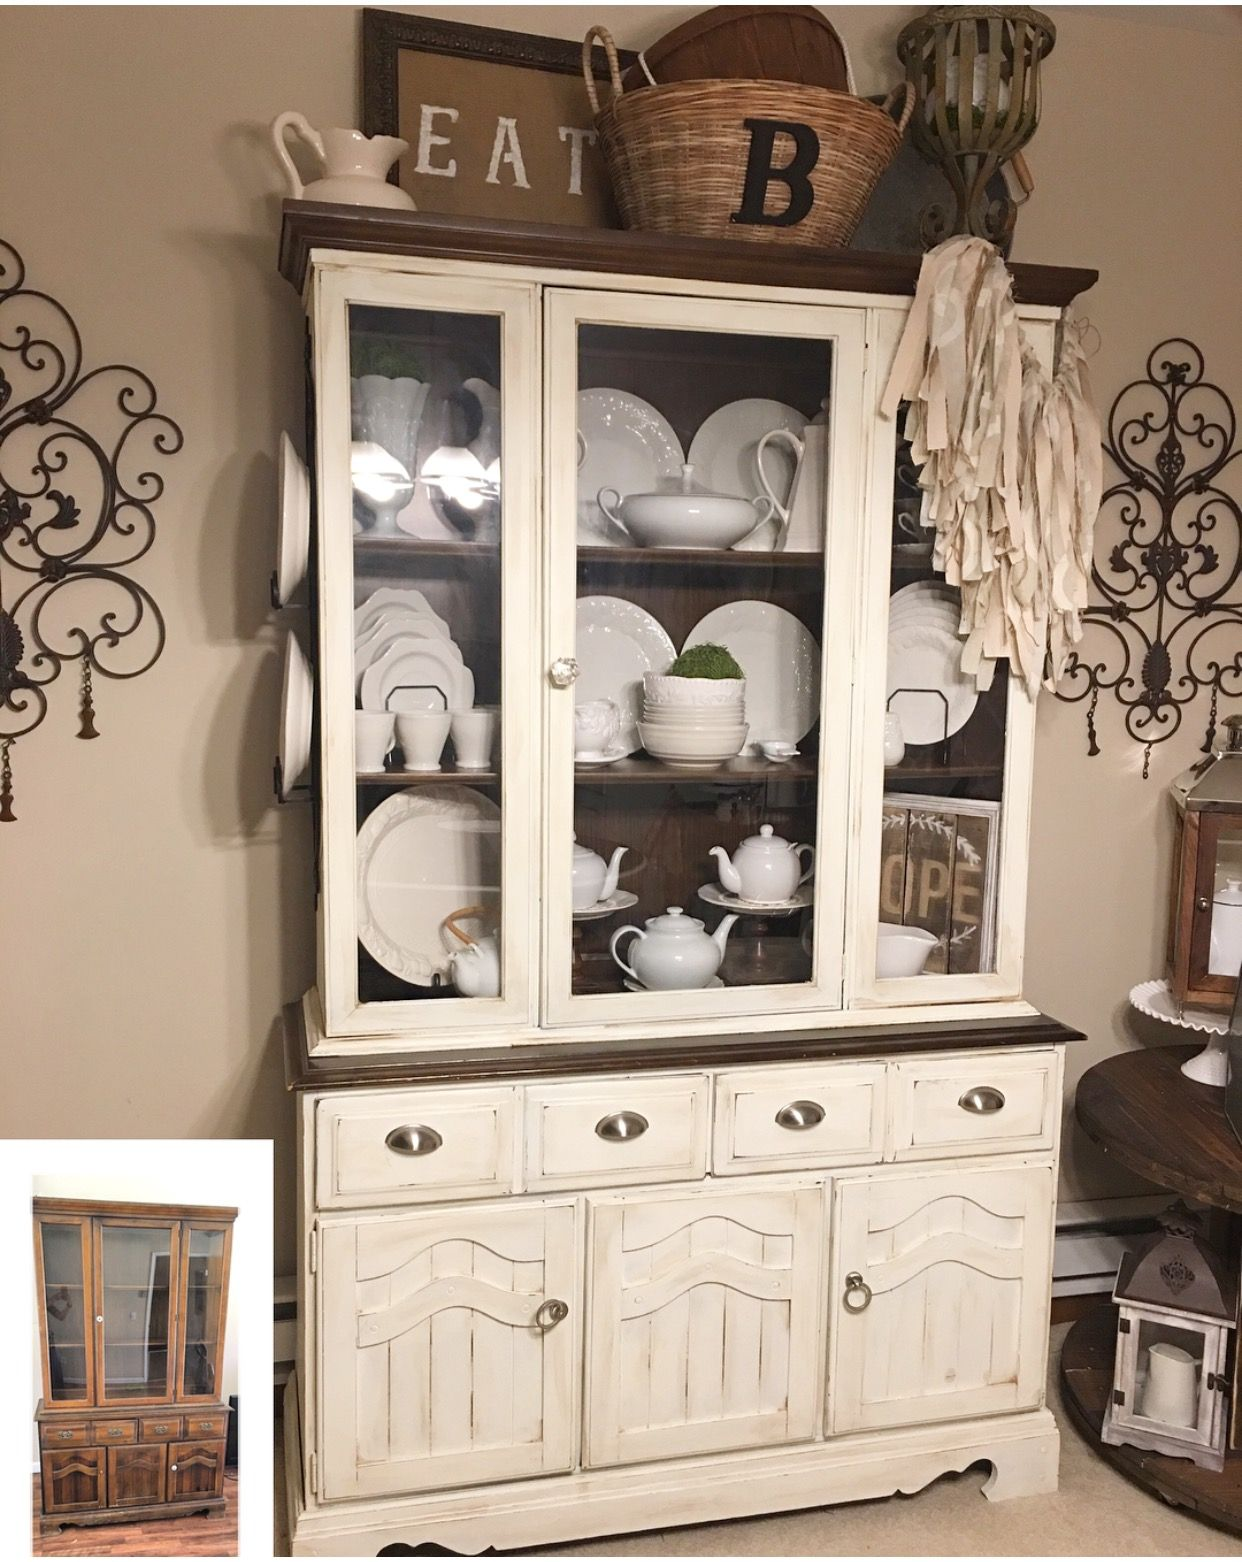 Before And After China Cabinet I Use Valspar Chalk Paint One Thing I Love The Most Is Flipping China Cabinet Decor Antique China Cabinets China Cabinet Redo